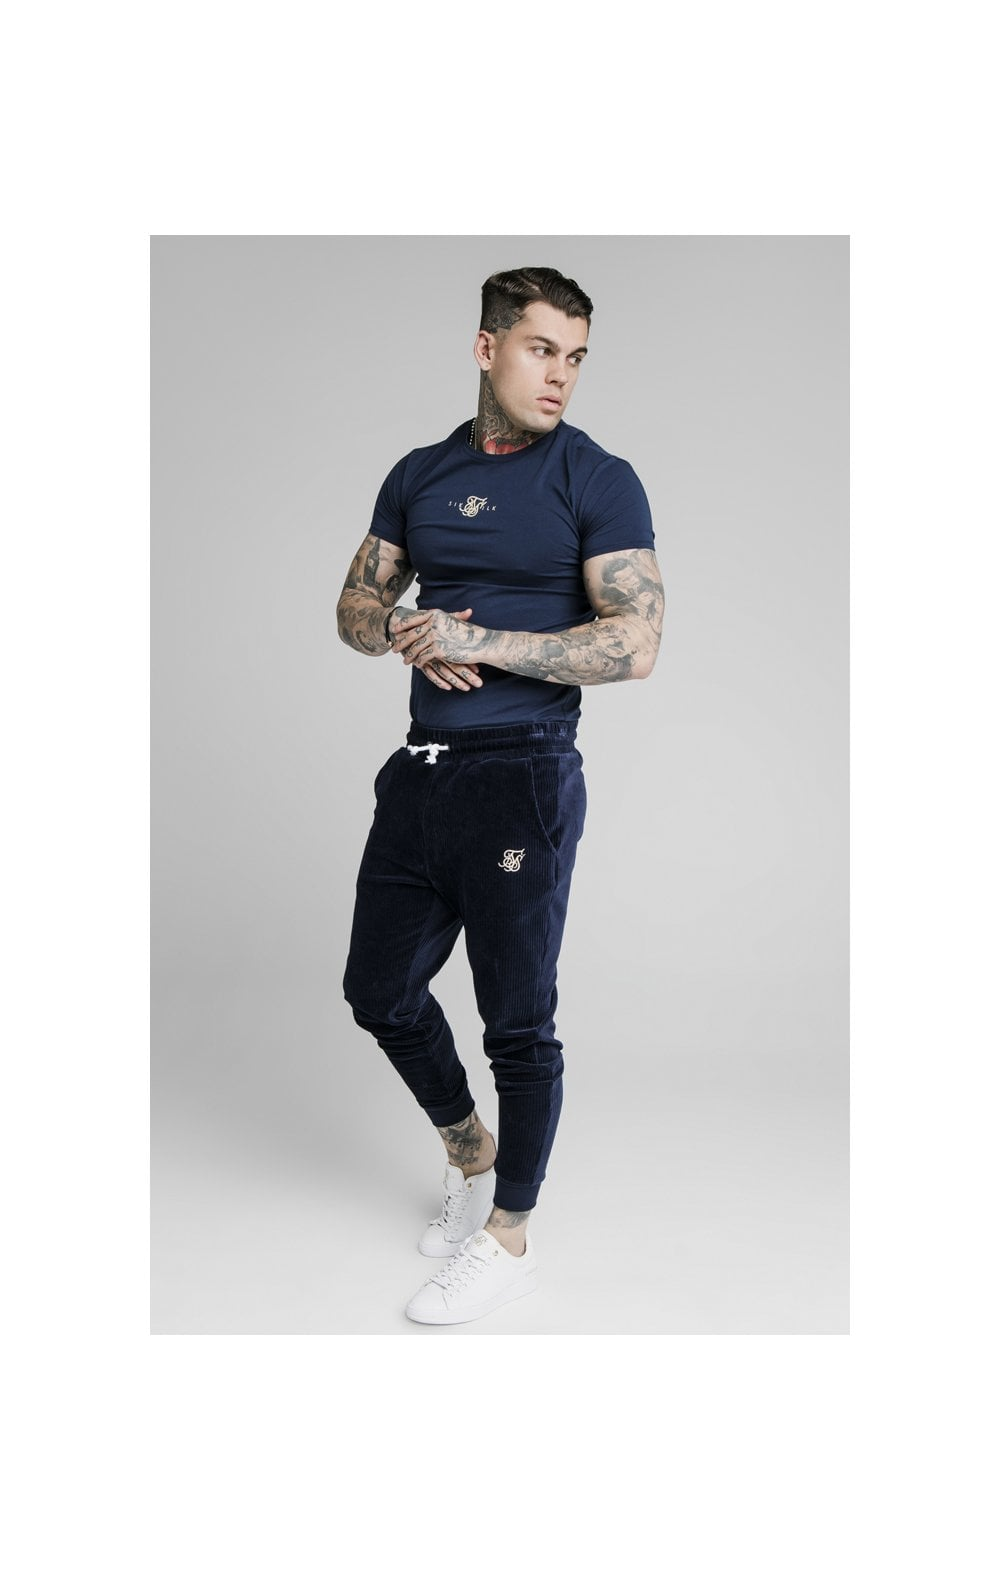 Load image into Gallery viewer, SikSilk Allure Straight Hem Gym Tee - Navy (2)